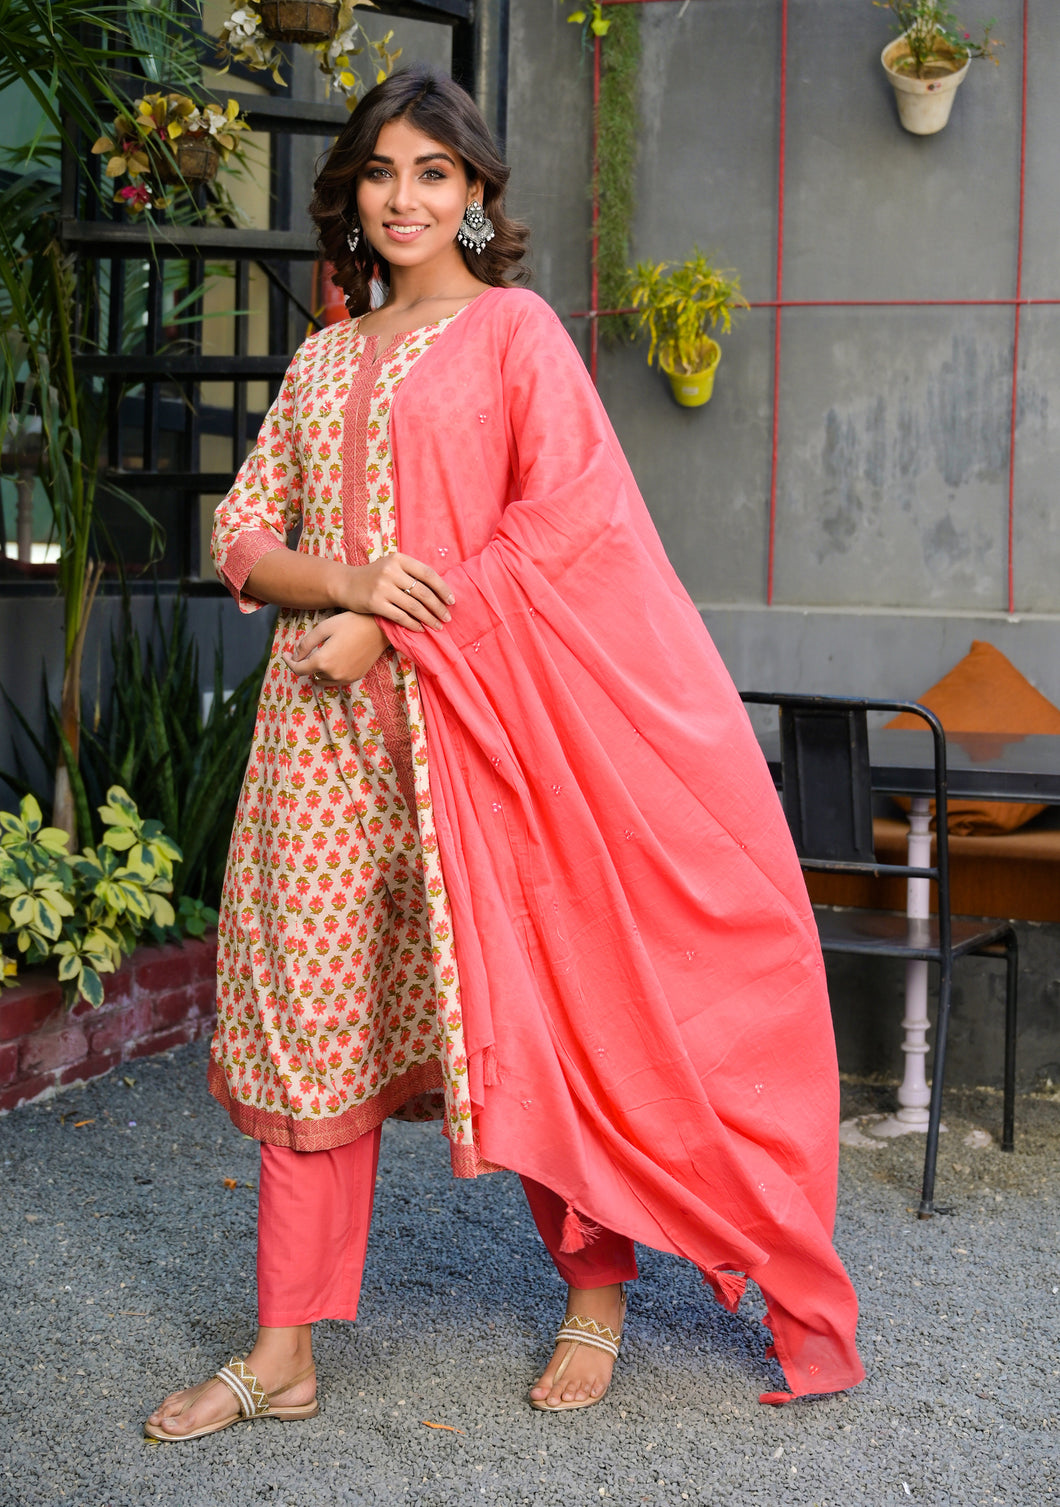 Yufta Women Peach and Beige Hand Block Printed Kurta Set With Solid Cotton Dupatta and Pant